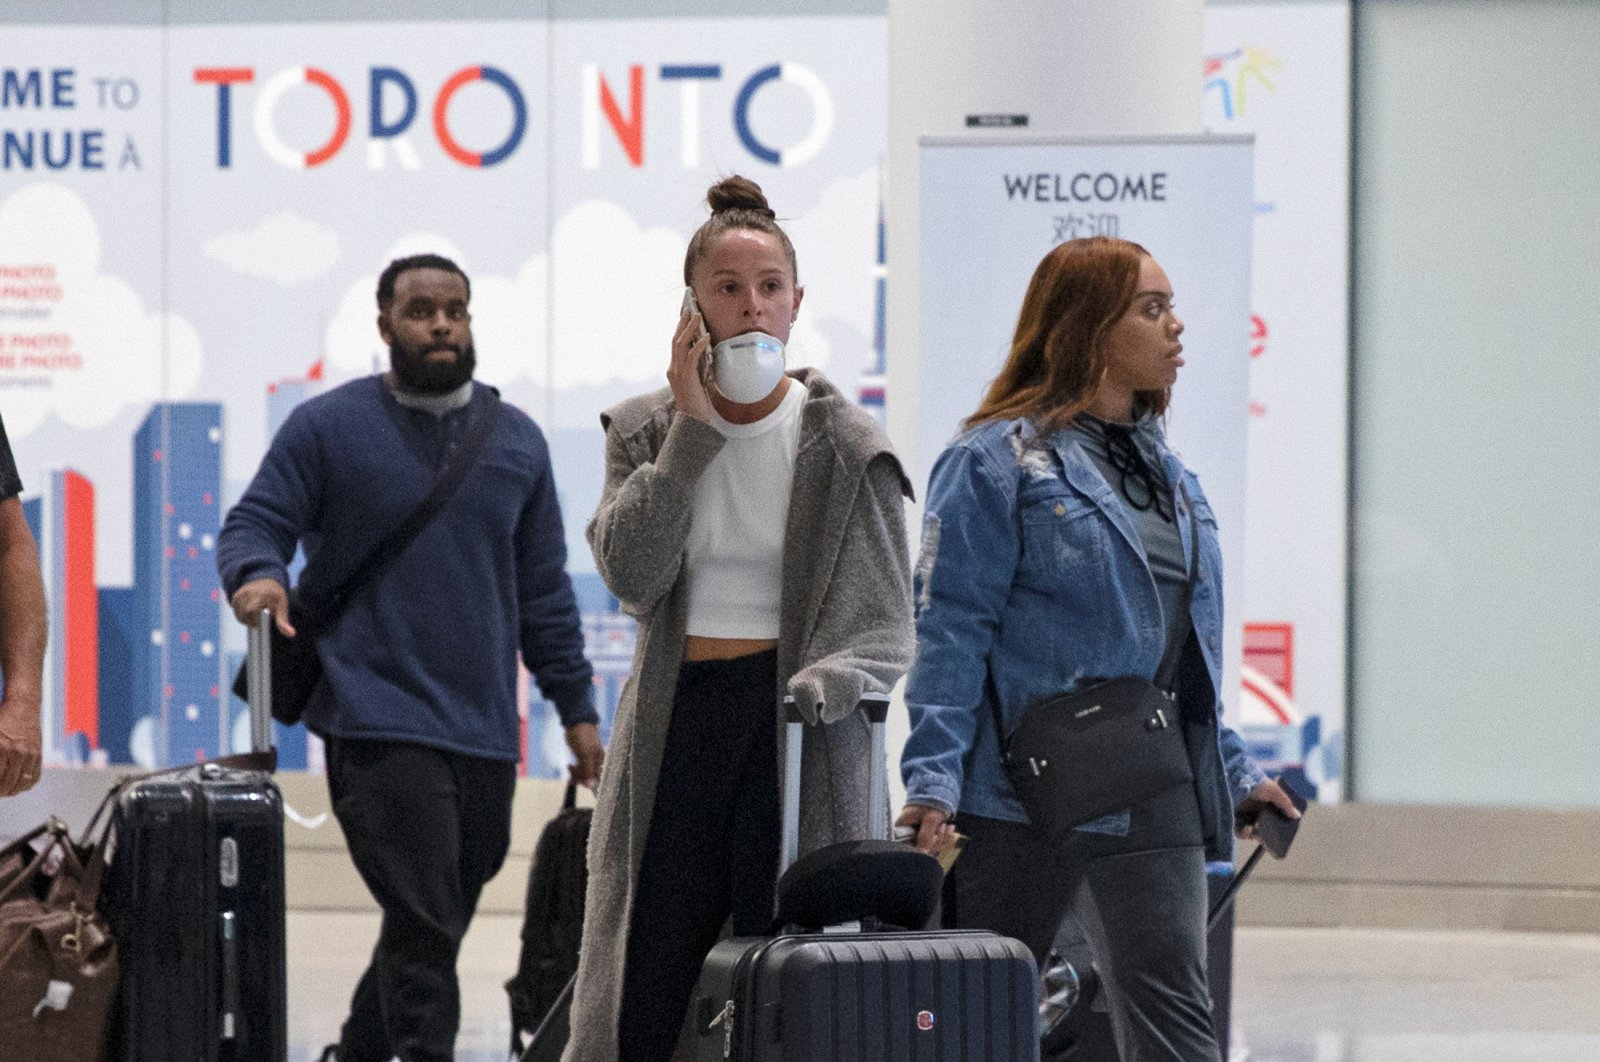 A traveler makes a phone call in the international arrivals lounge, amid a growing global number of coronavirus cases at Pearson Airport in Toronto, Ontario, Canada, March 13, 2020. (Reuters Photo)